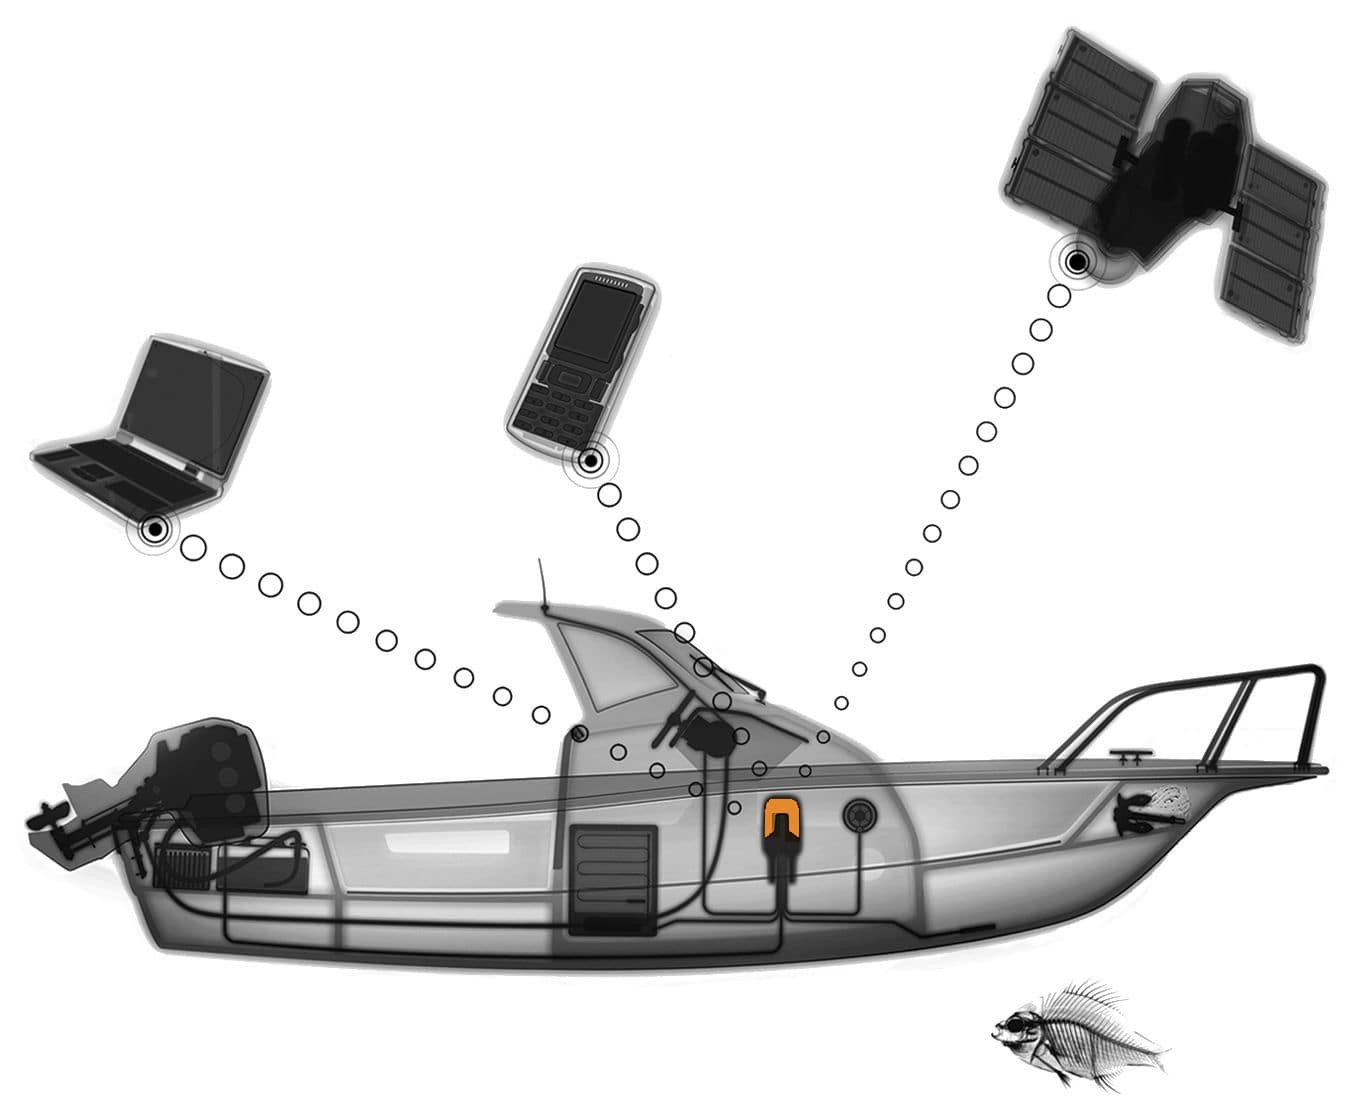 boat surveillance and alarm system multi function remote c pod